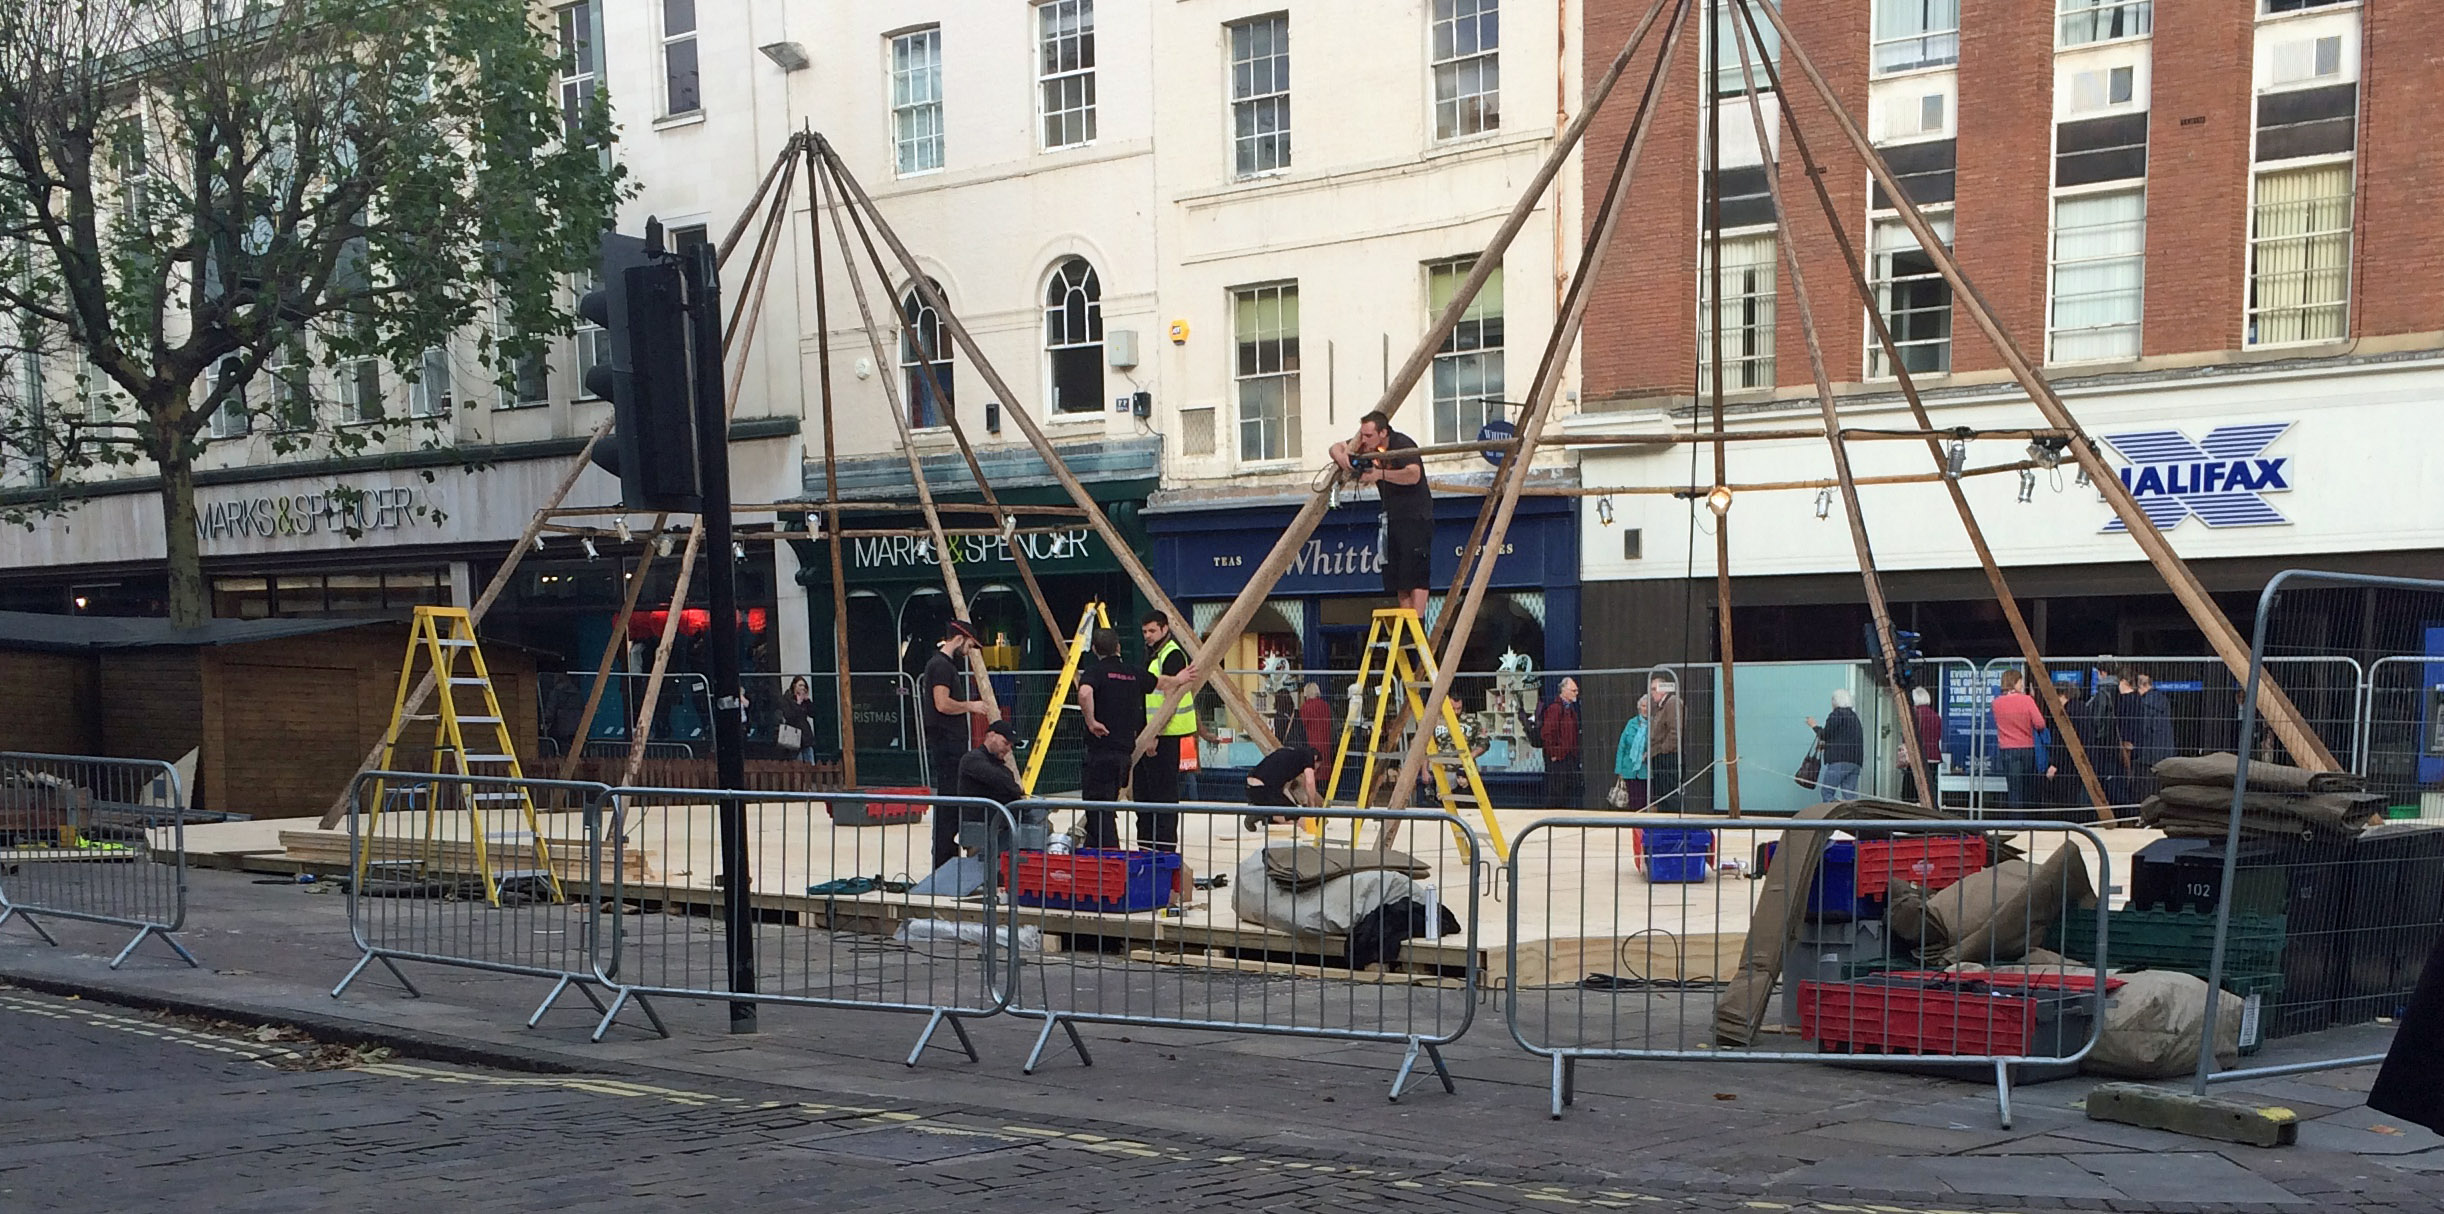 TiPi bars being erected on Parliament Street